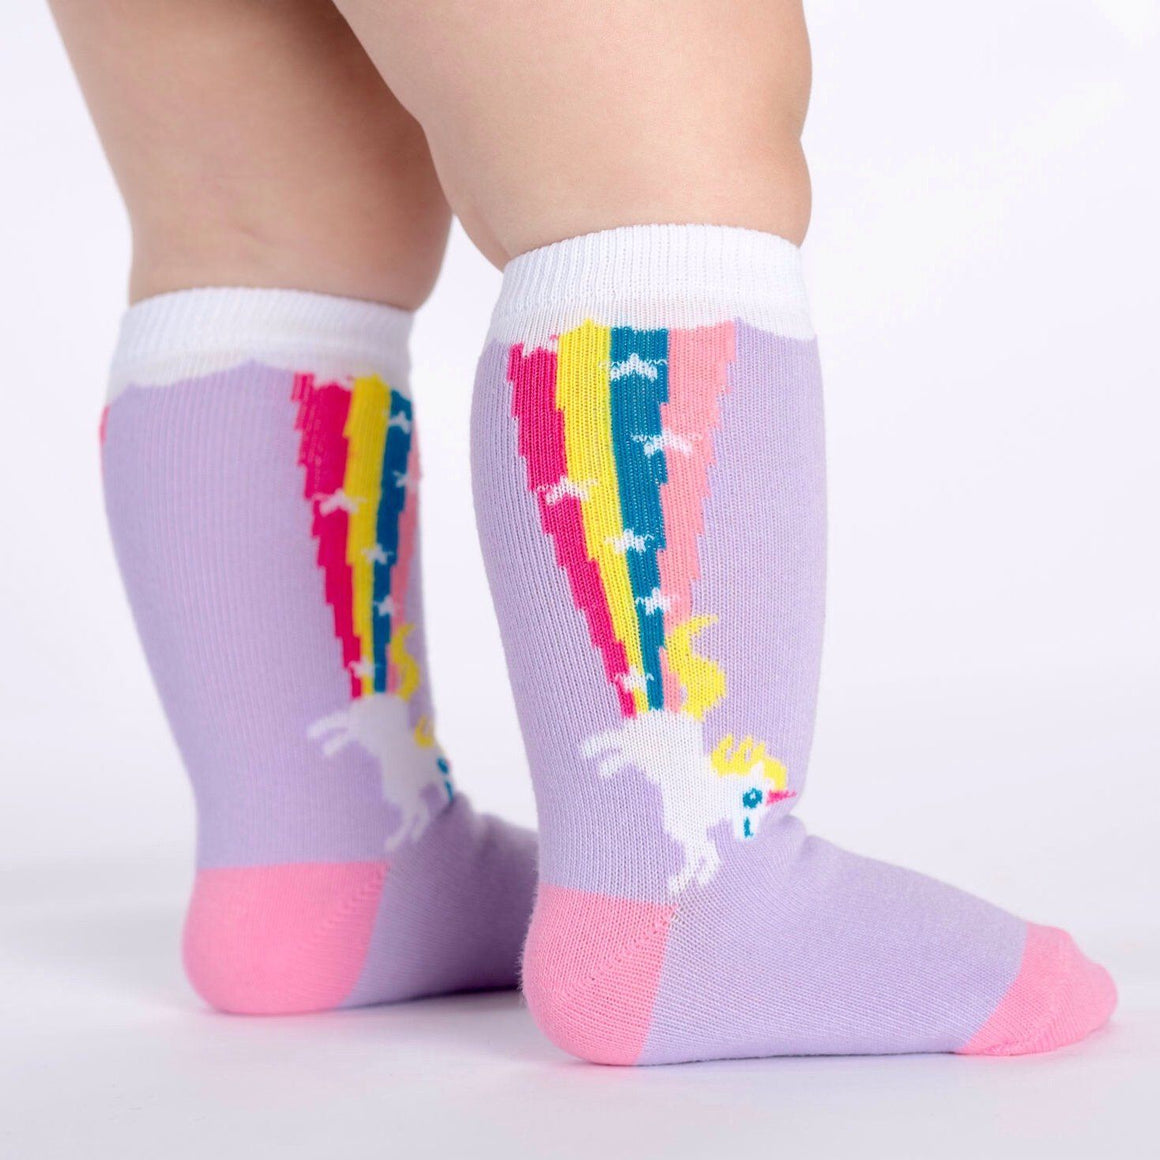 SOCKS - TODDLER KNEE RAINBOW BLAST